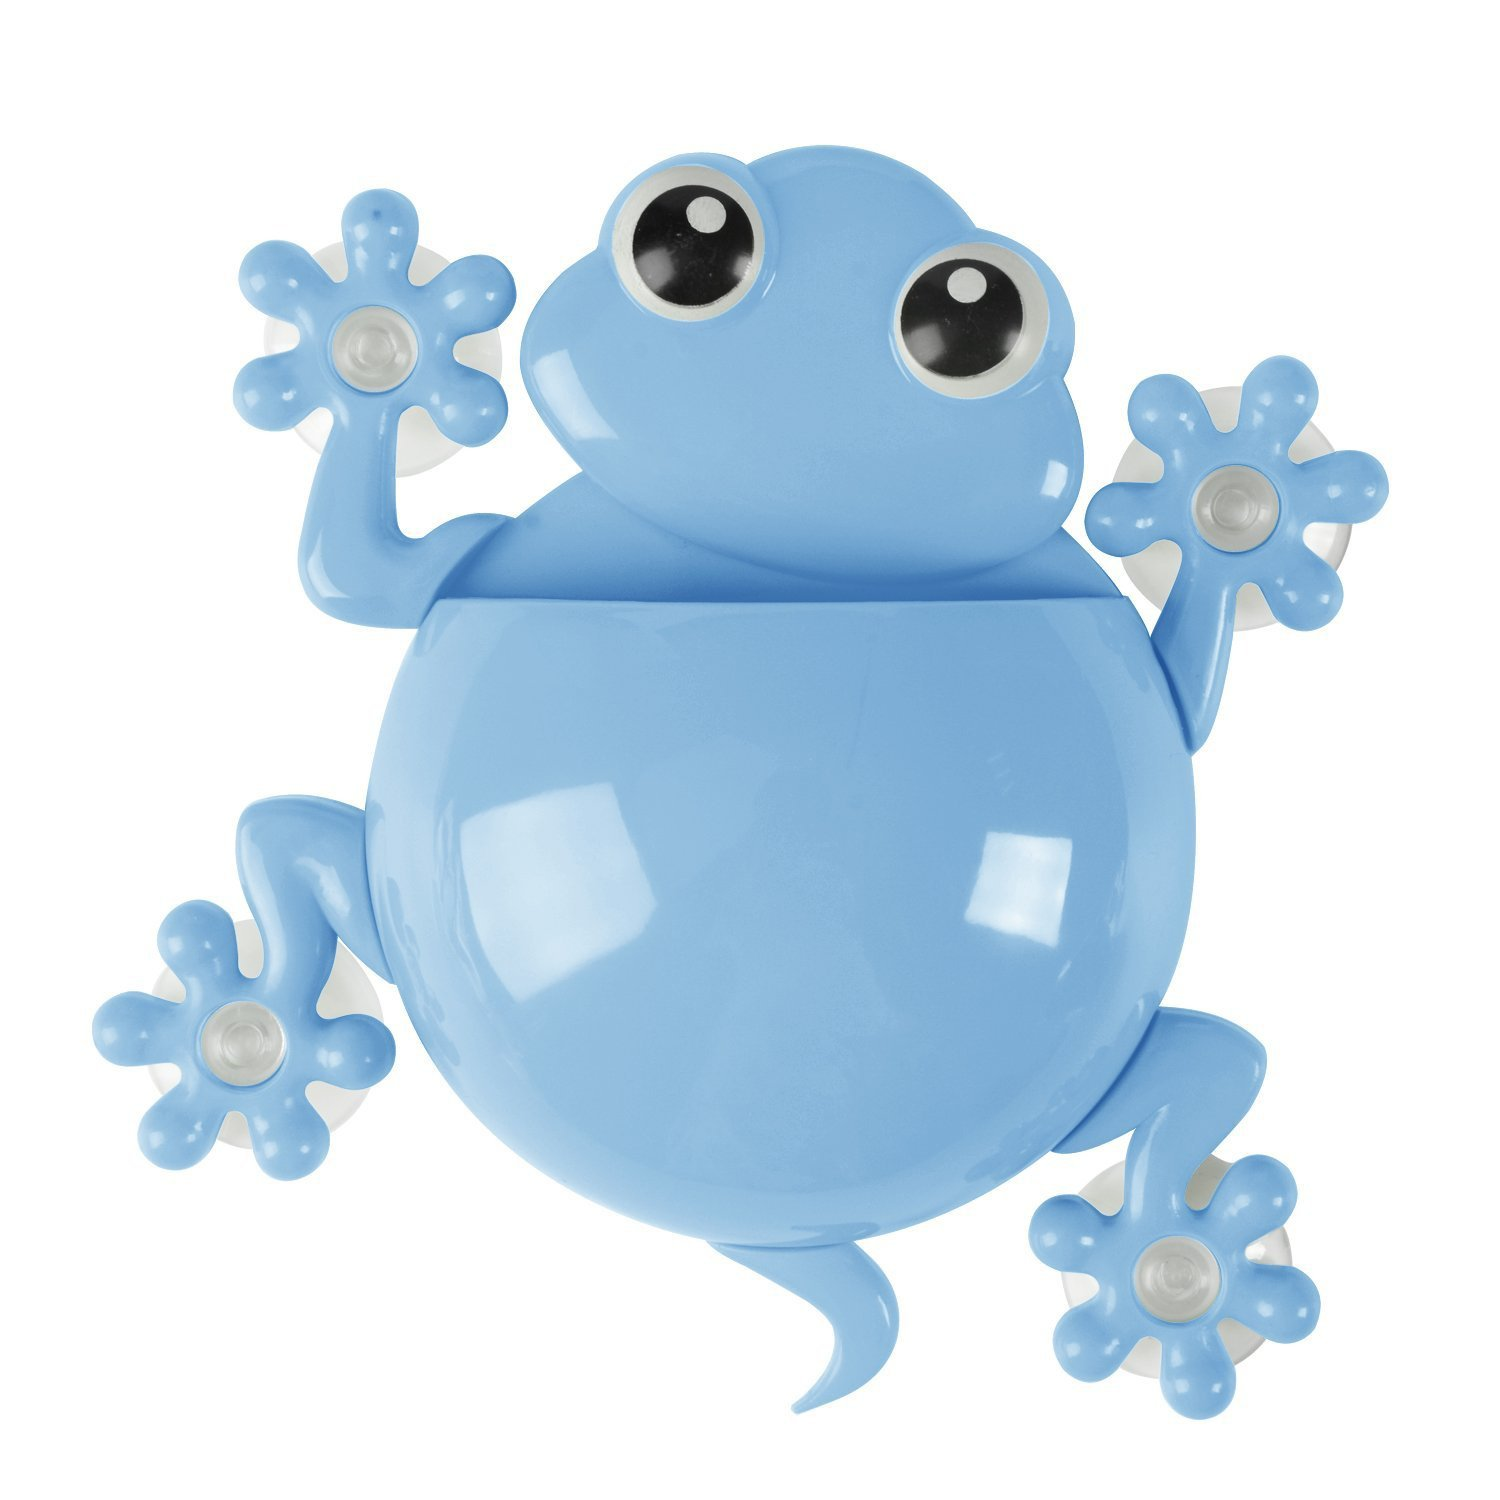 Saim Cute Cartoon Little Frog Kids Wall Suction Cup Mount Toothbrush Holder Container Blue